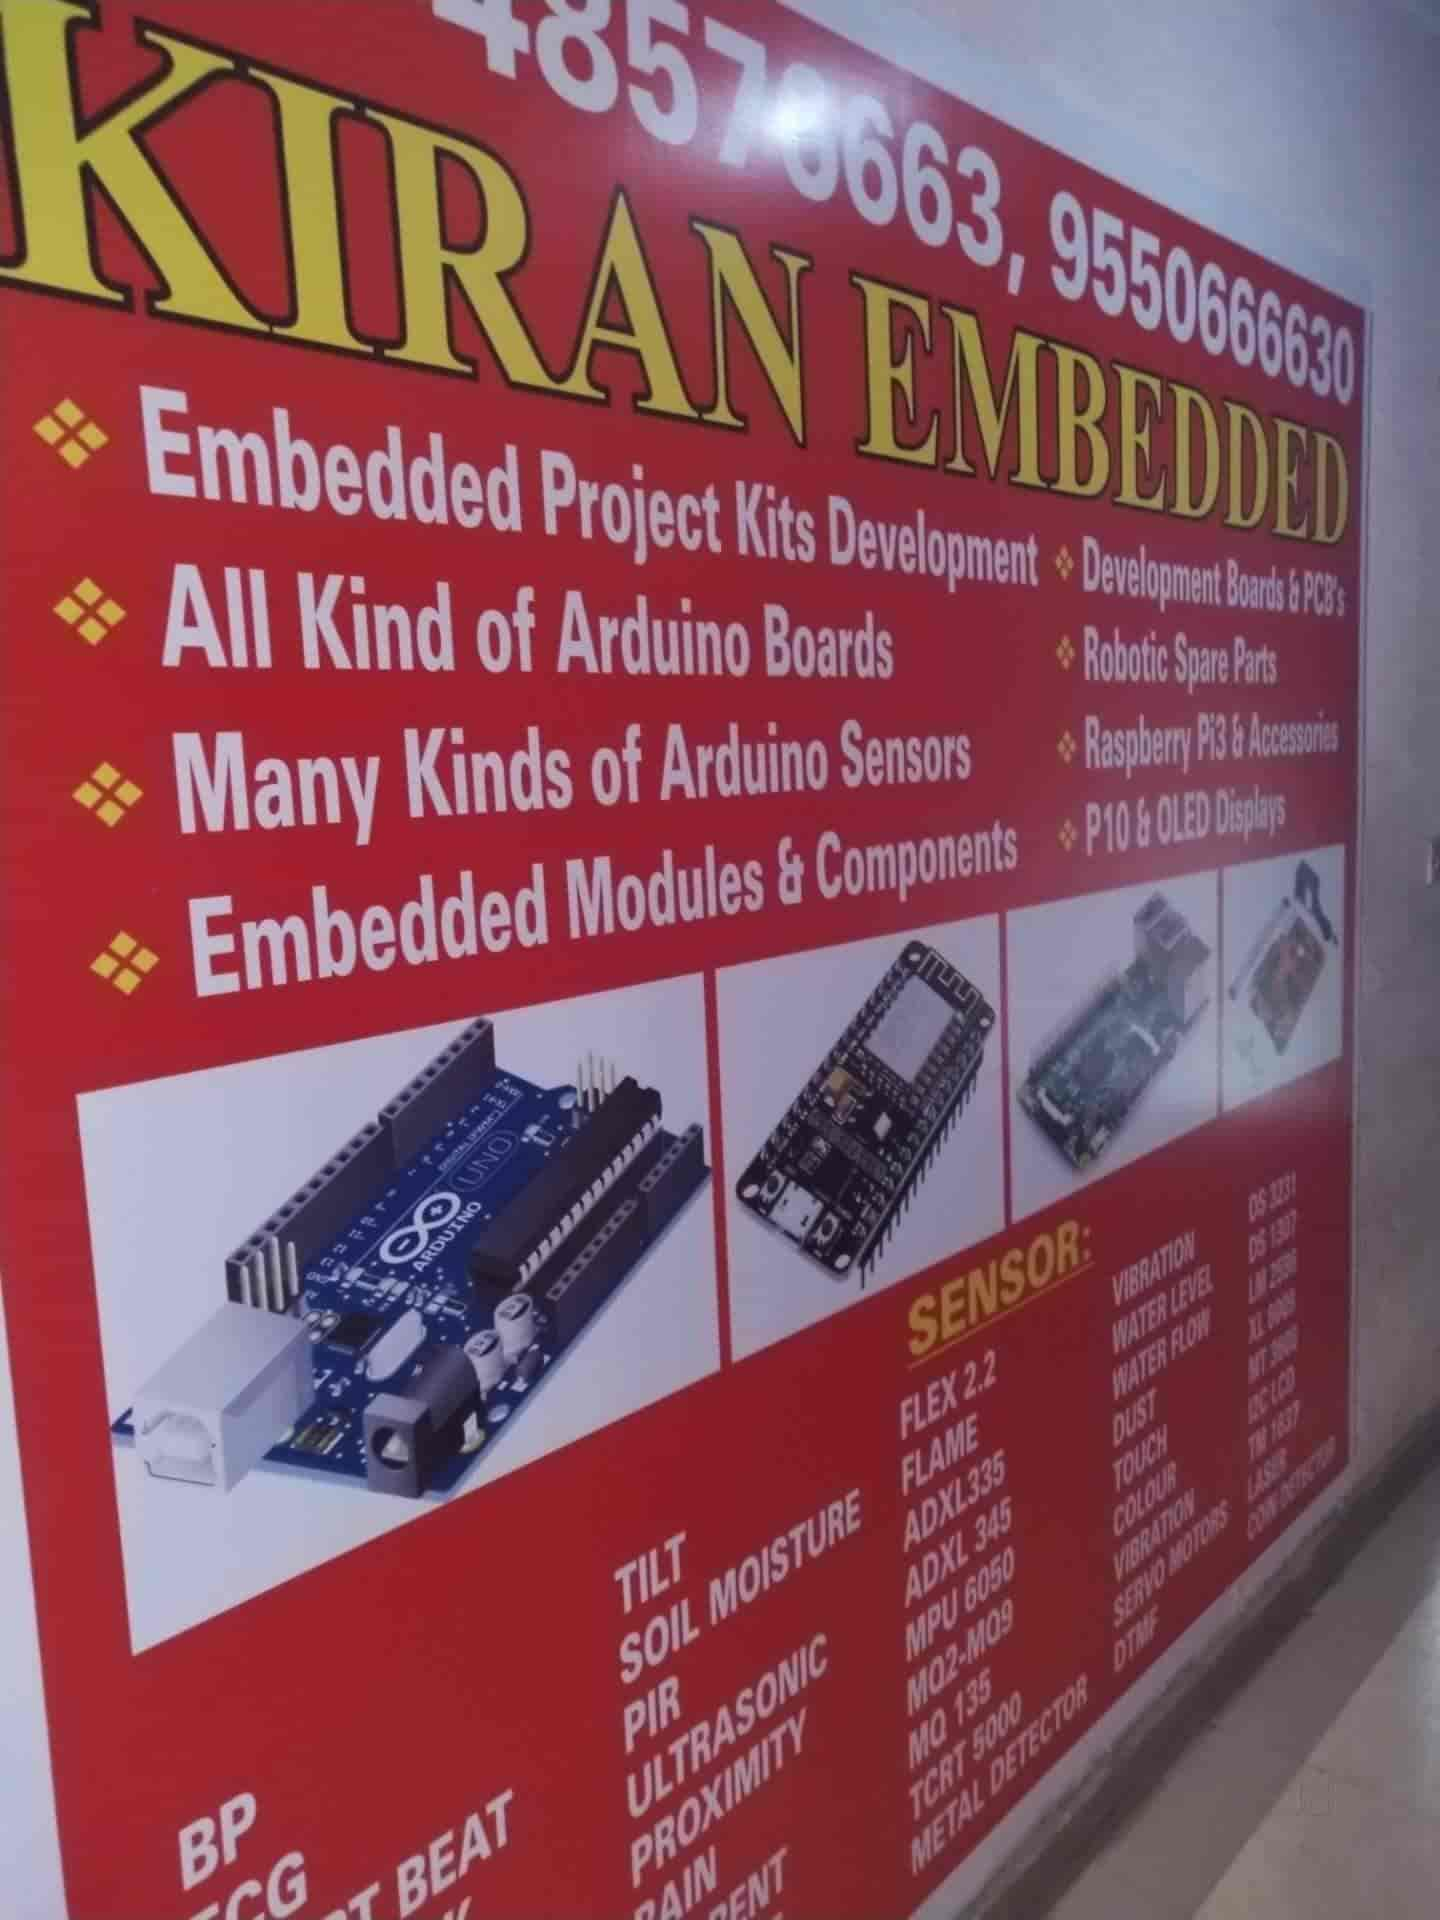 Kirans Embedded Solutions Pvt Ltd Ameerpet Computer Training Institutes For Embedded System Design In Hyderabad Justdial